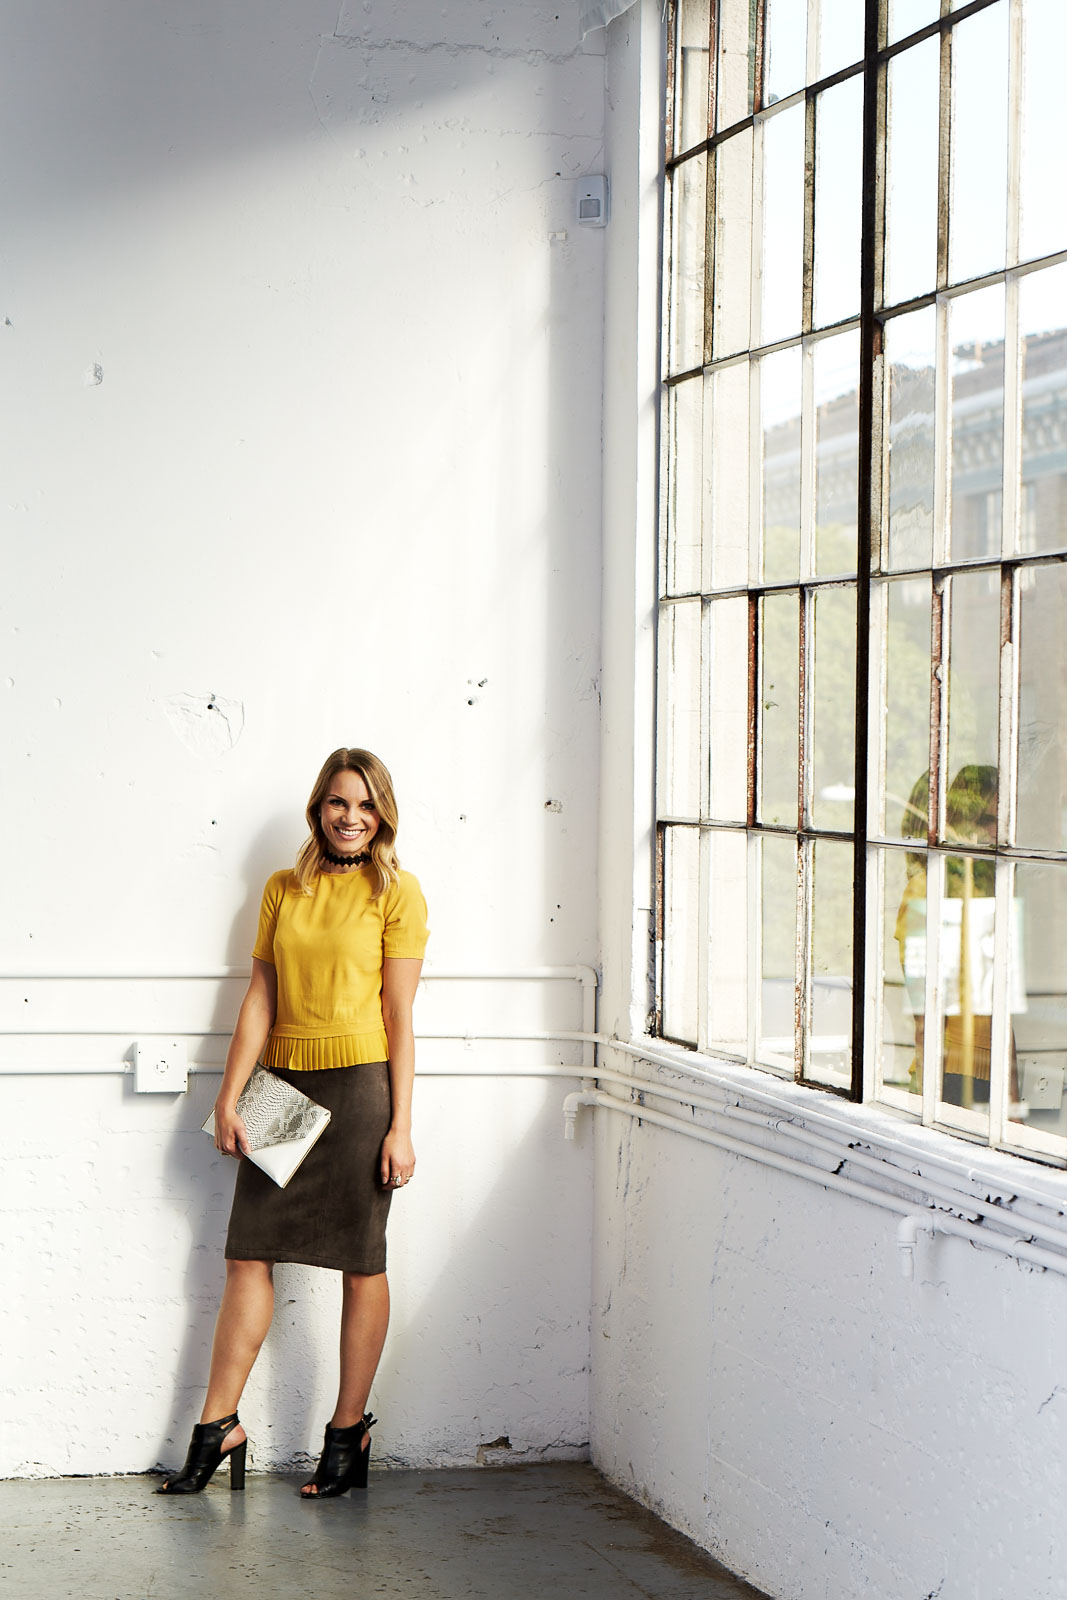 Why not make work outfits fun and a little edgy? Try pairing a colorful top with a suede pencil skirt black heels and a choker!